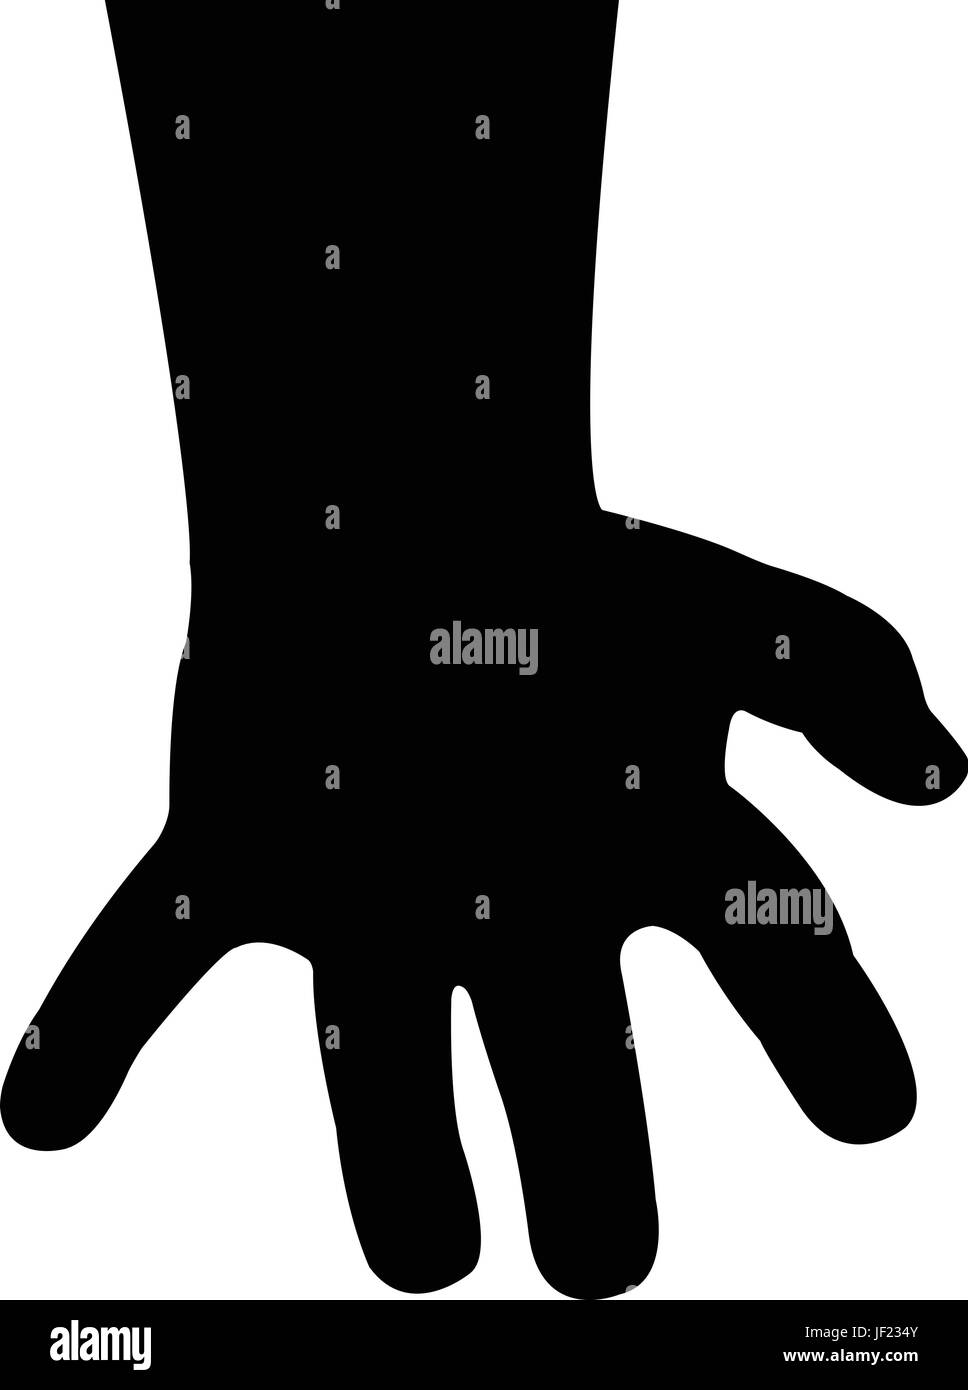 humans, human beings, people, folk, persons, human, human being, finger, Stock Vector